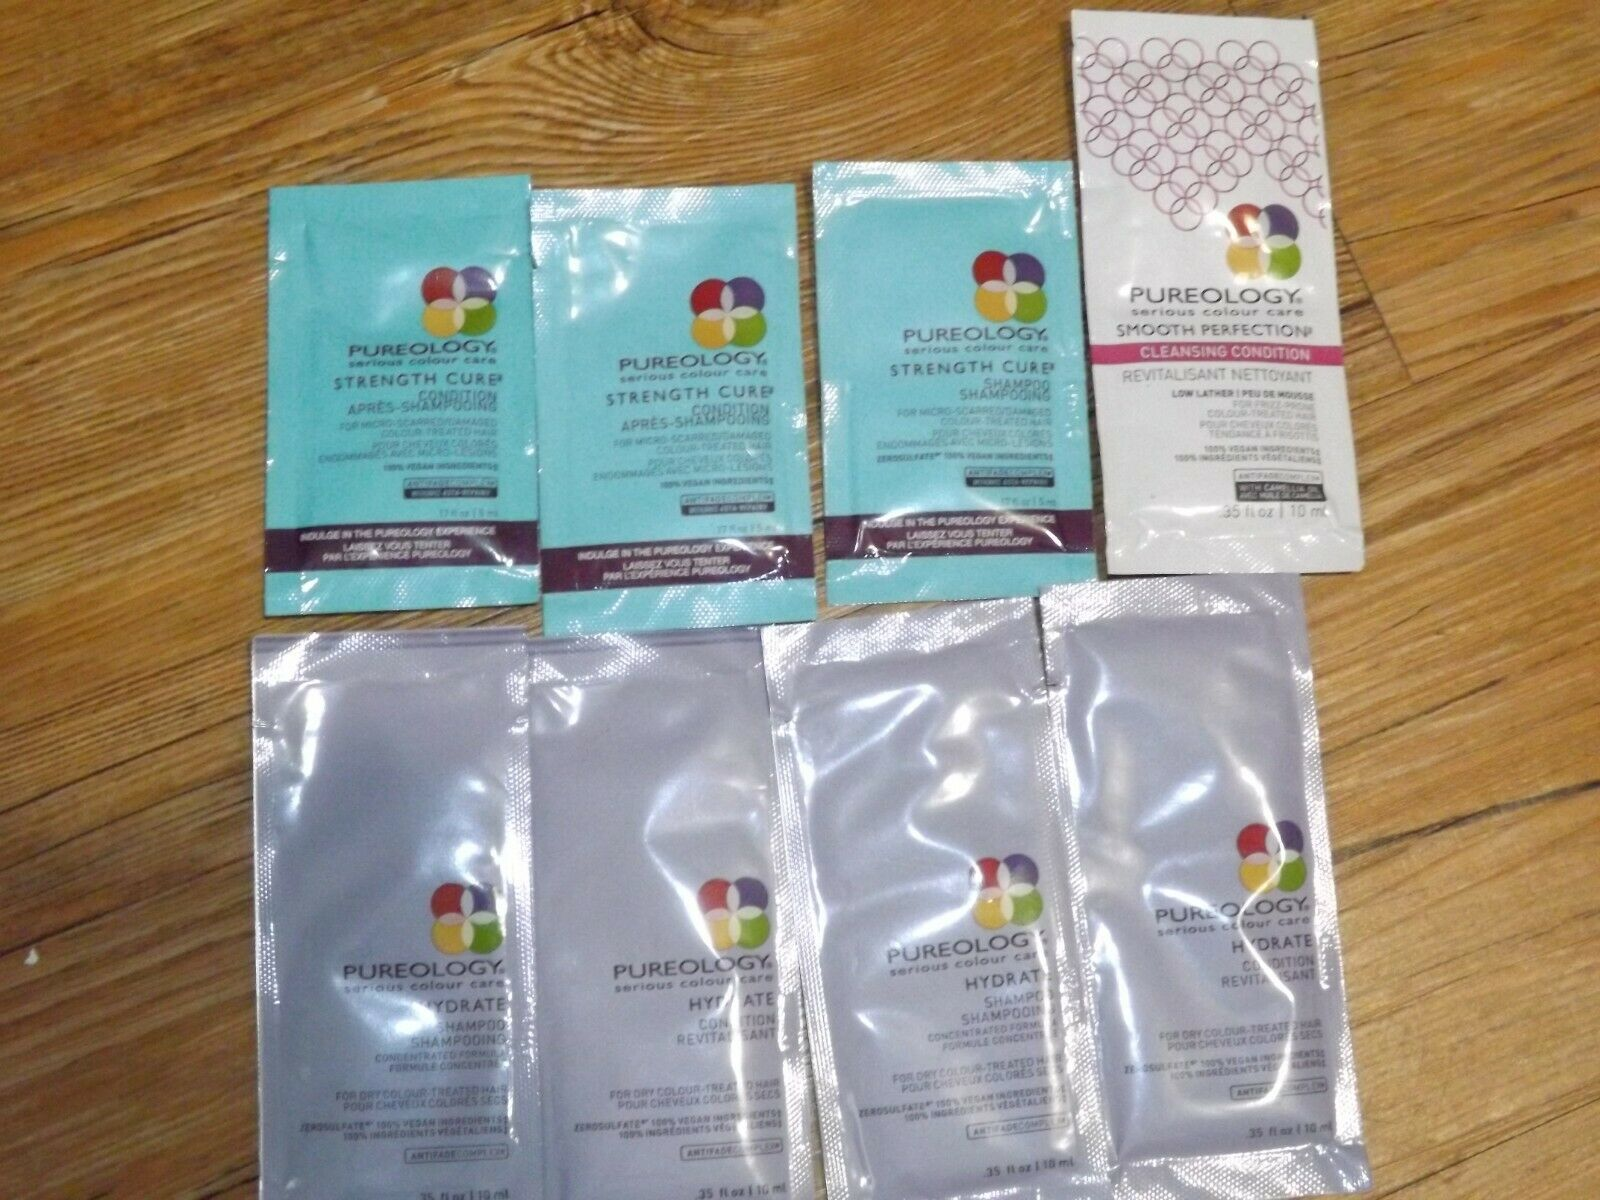 LOT of 8 PUREOLOGY serious colour care Hydrate strength  shampoo & conditioner - $9.90